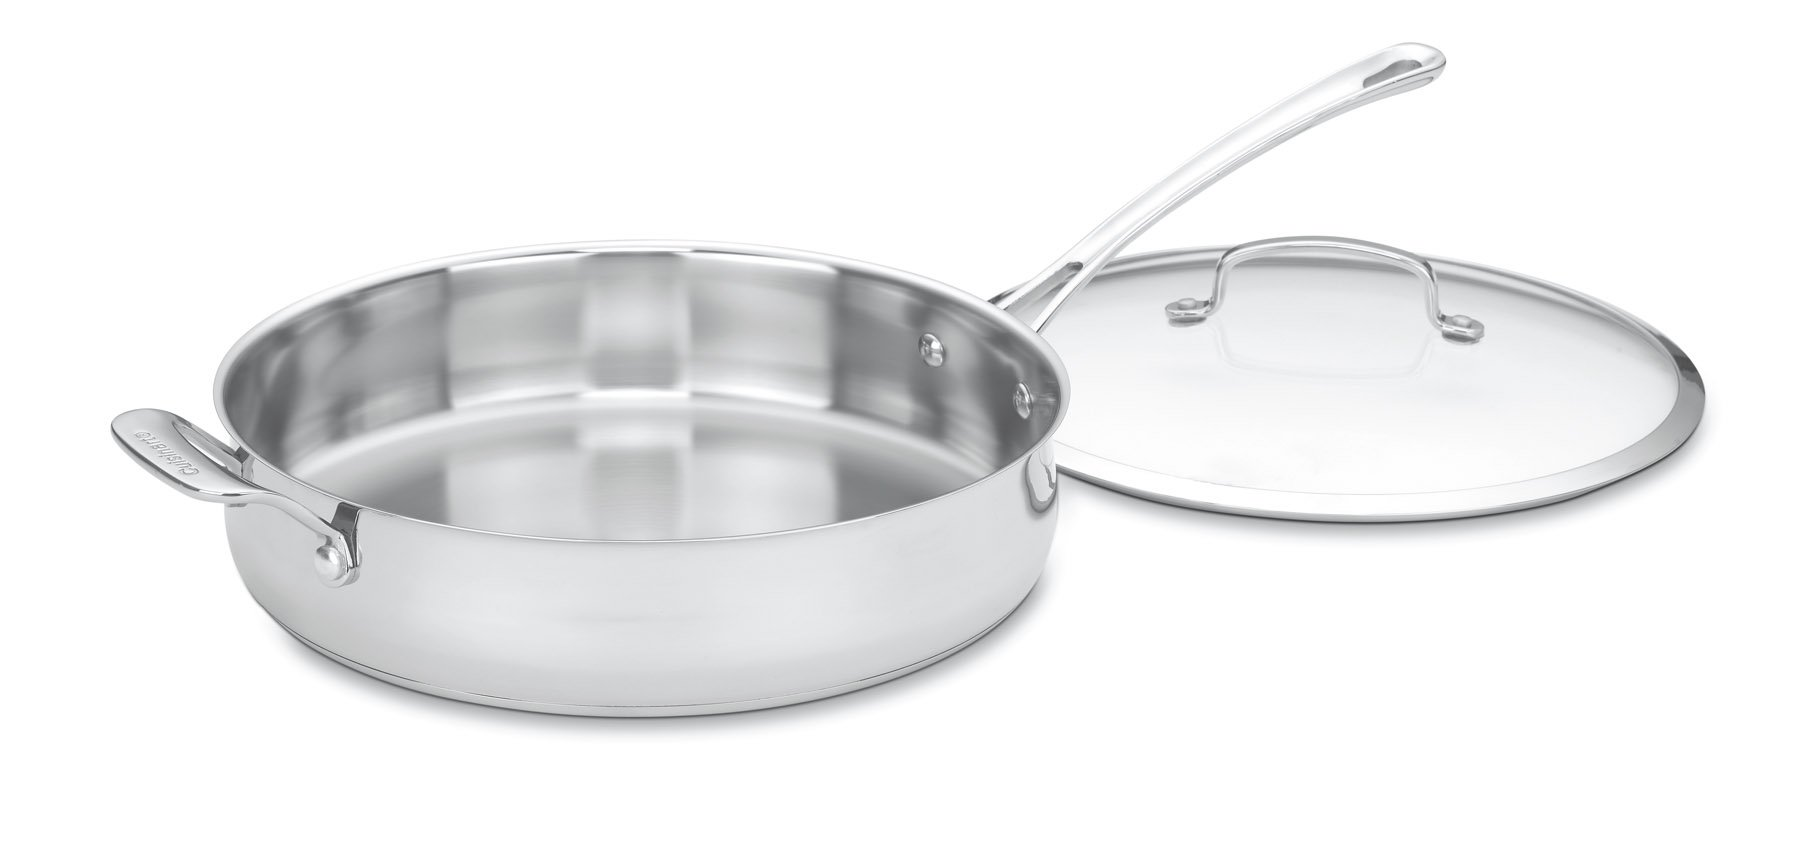 Cuisinart 433-30H Contour Stainless 5-Quart Saute Pan with Helper Handle and Glass Cover by Cuisinart